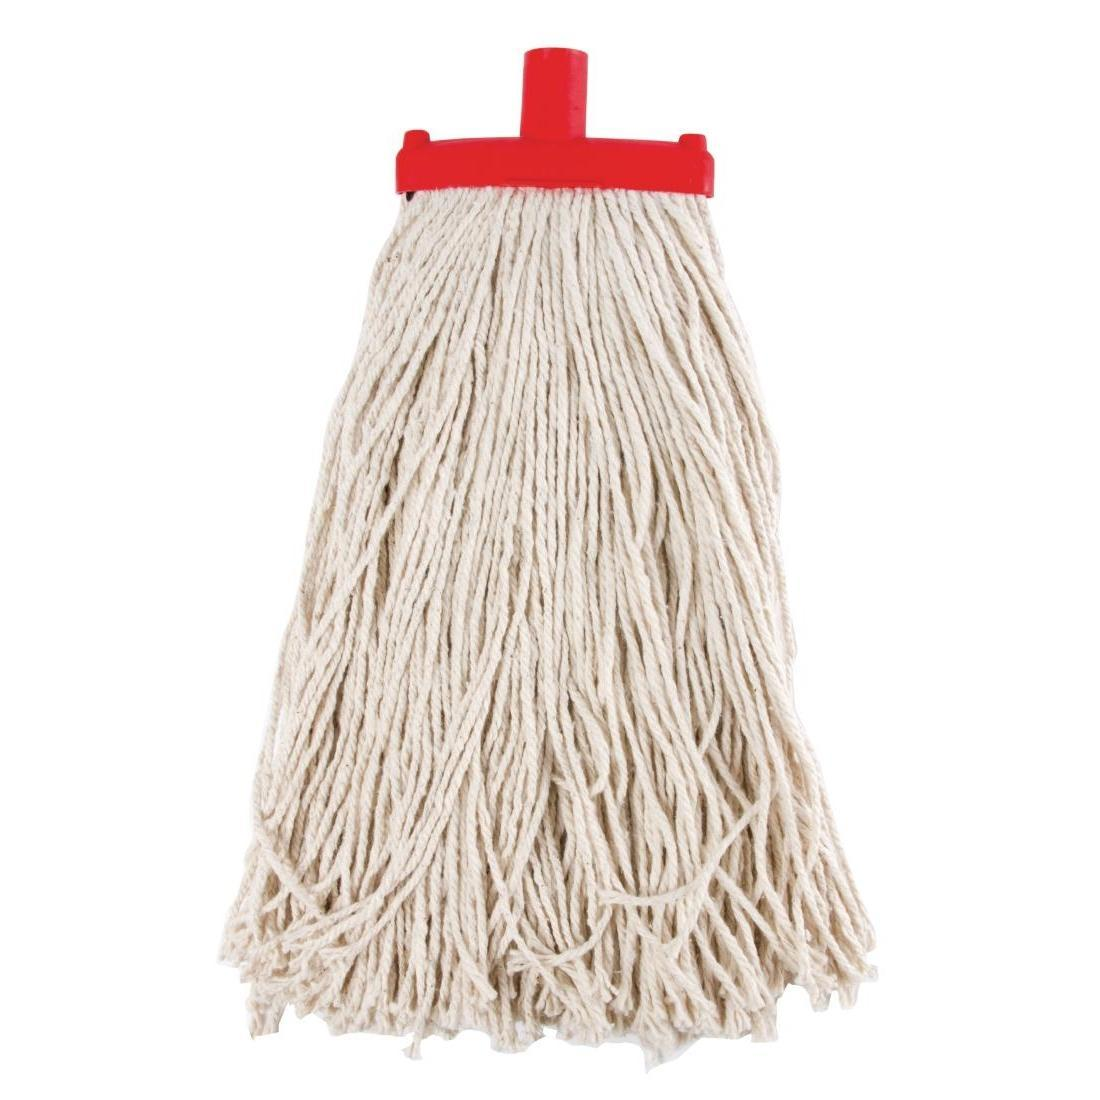 Jantex Prairie Kentucky Yarn Socket Mop Head Red